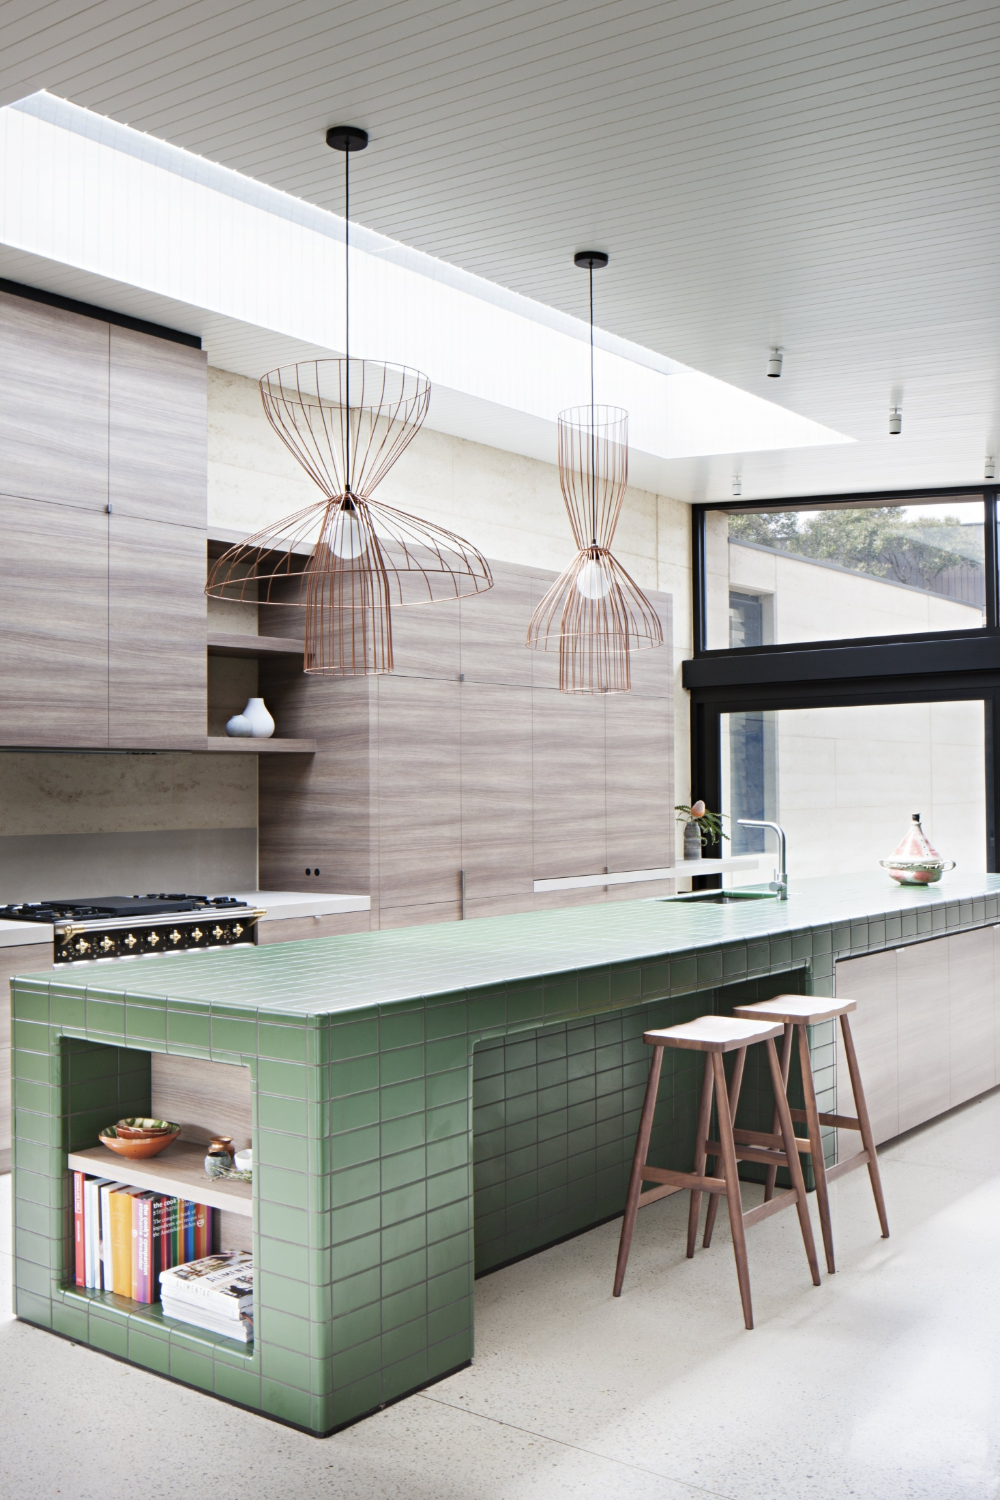 Tiled Kitchen Island In Contemporary Wood Kitchen At Layer House By Robson Rak Architects Contemporary Wood Kitchen Interior Design Kitchen Kitchen Interior